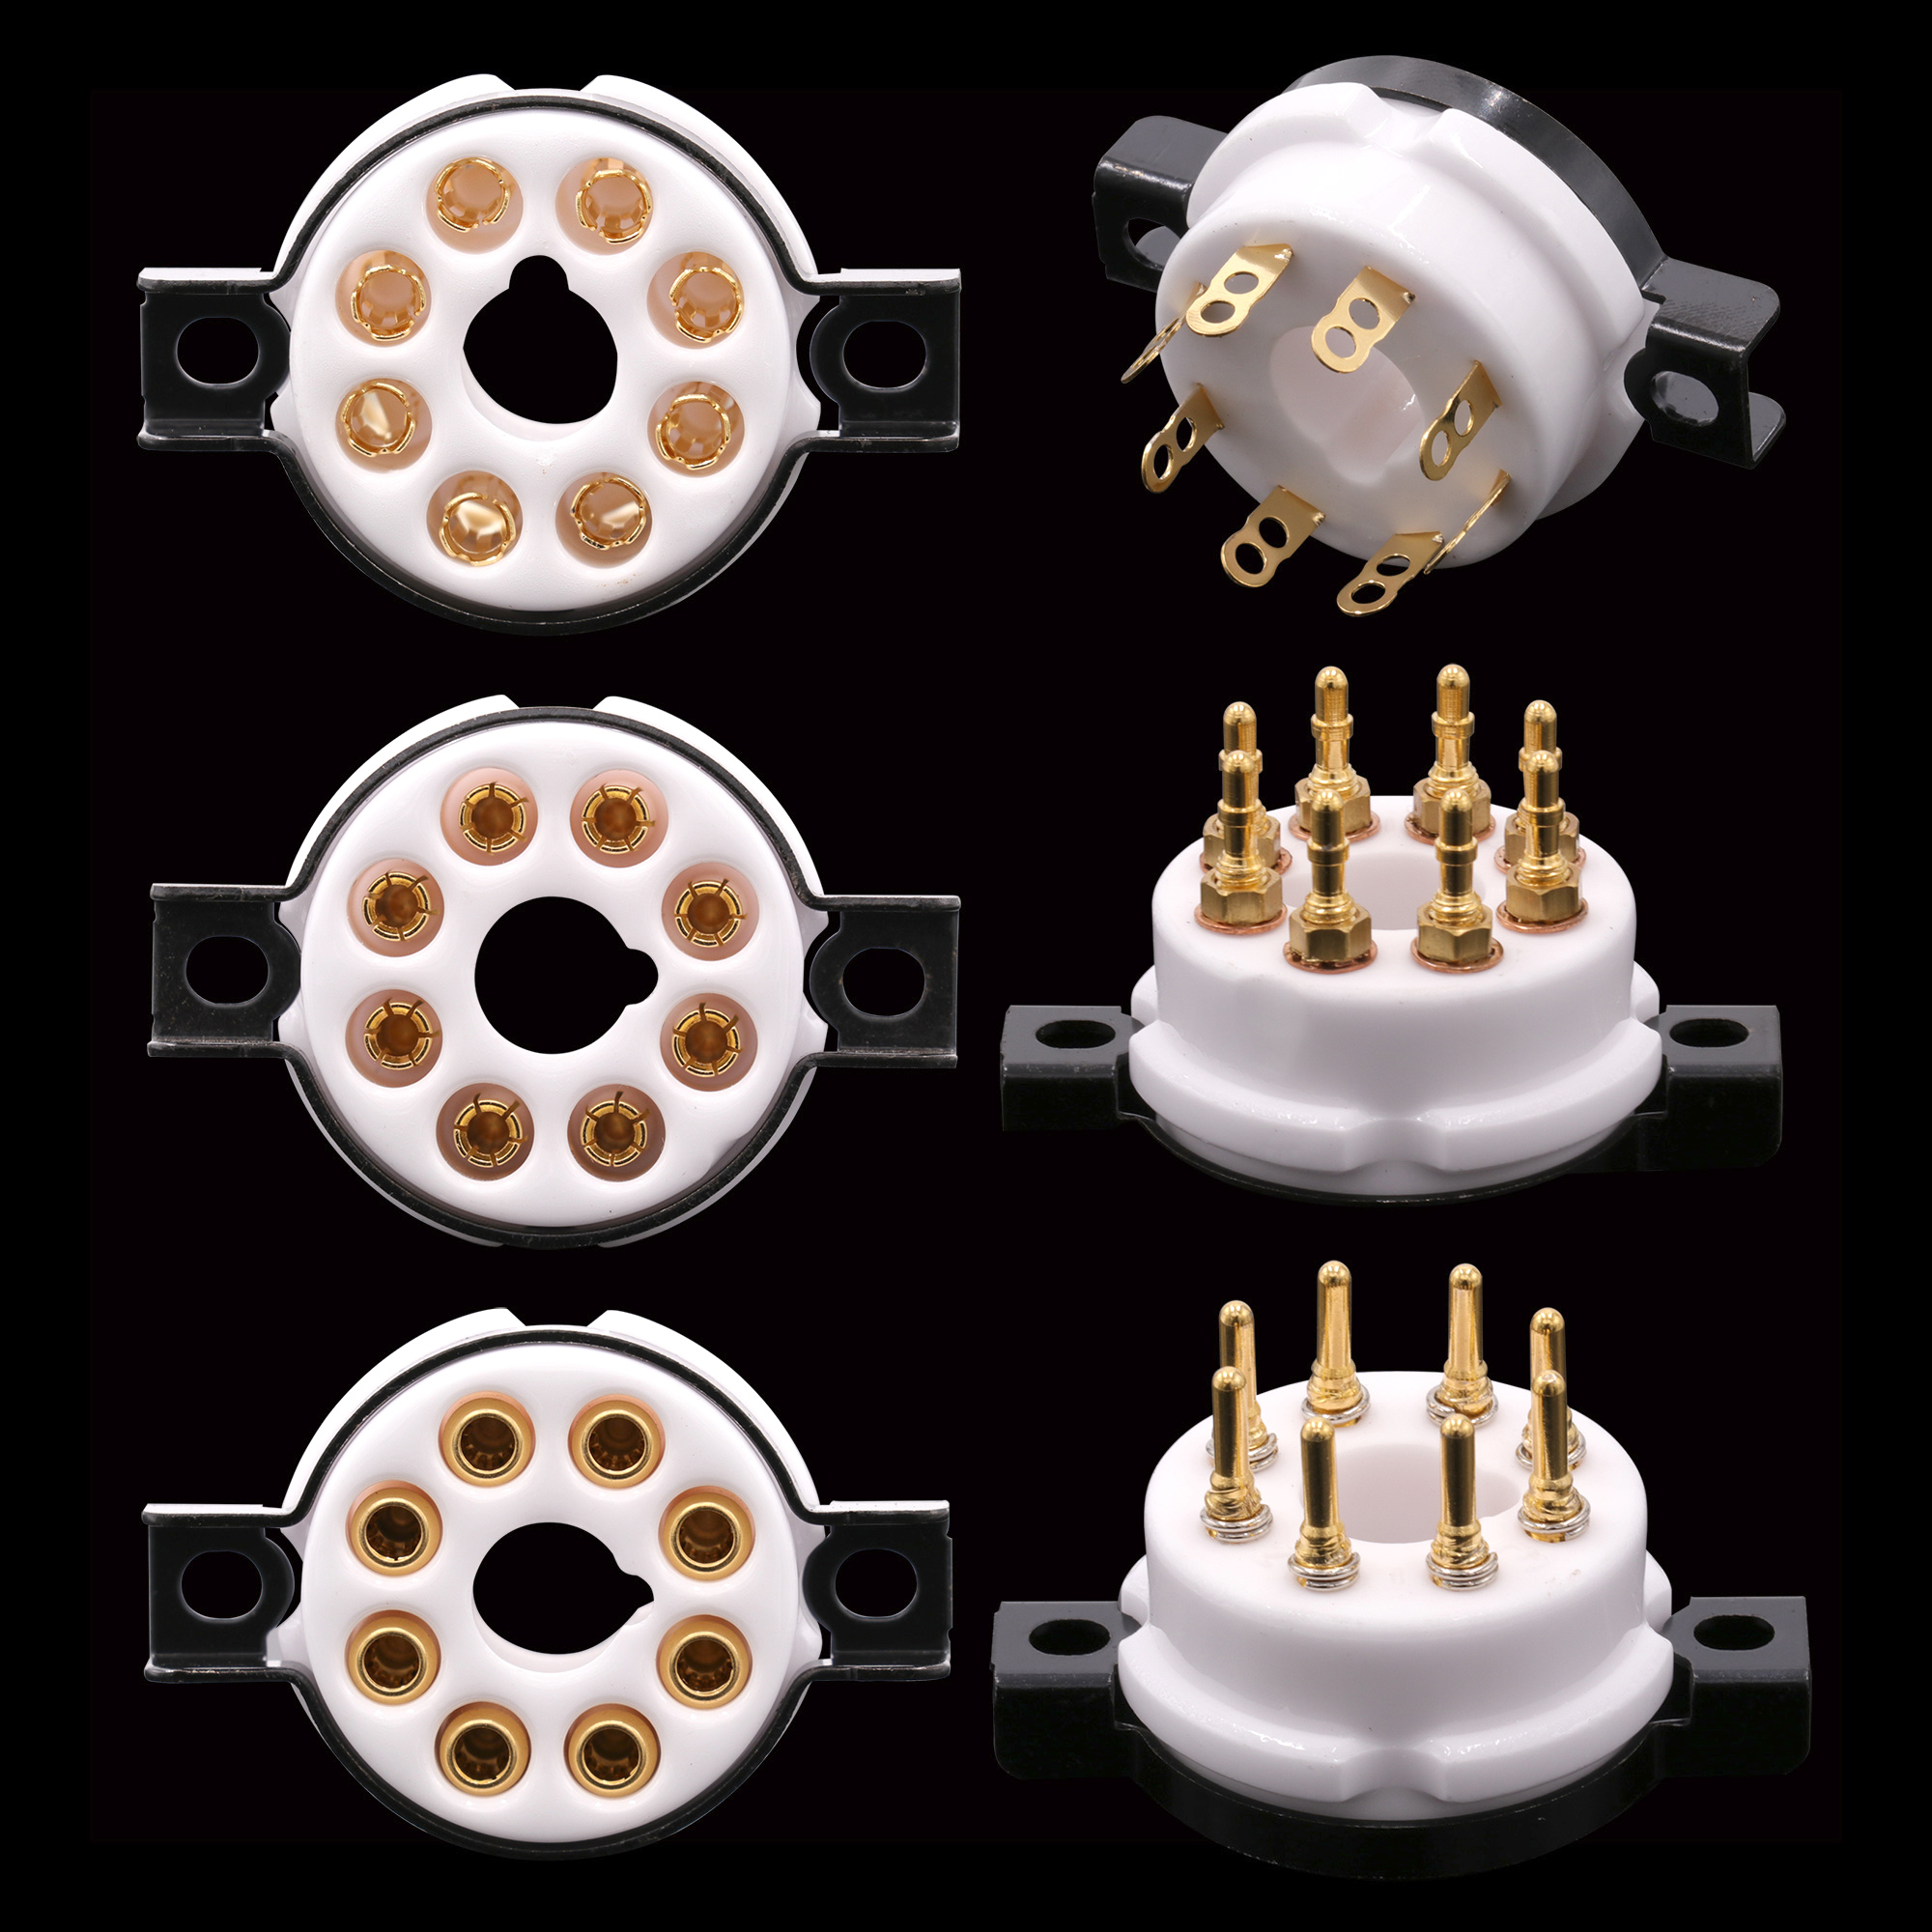 EIZZ High End Ceramic 8pin Octal Vacuum Tube Socket Base Gold Brass Pins For EL34 KT88 6550 6V6 274B 6L6 Hifi Tube AMP DIY 1PC